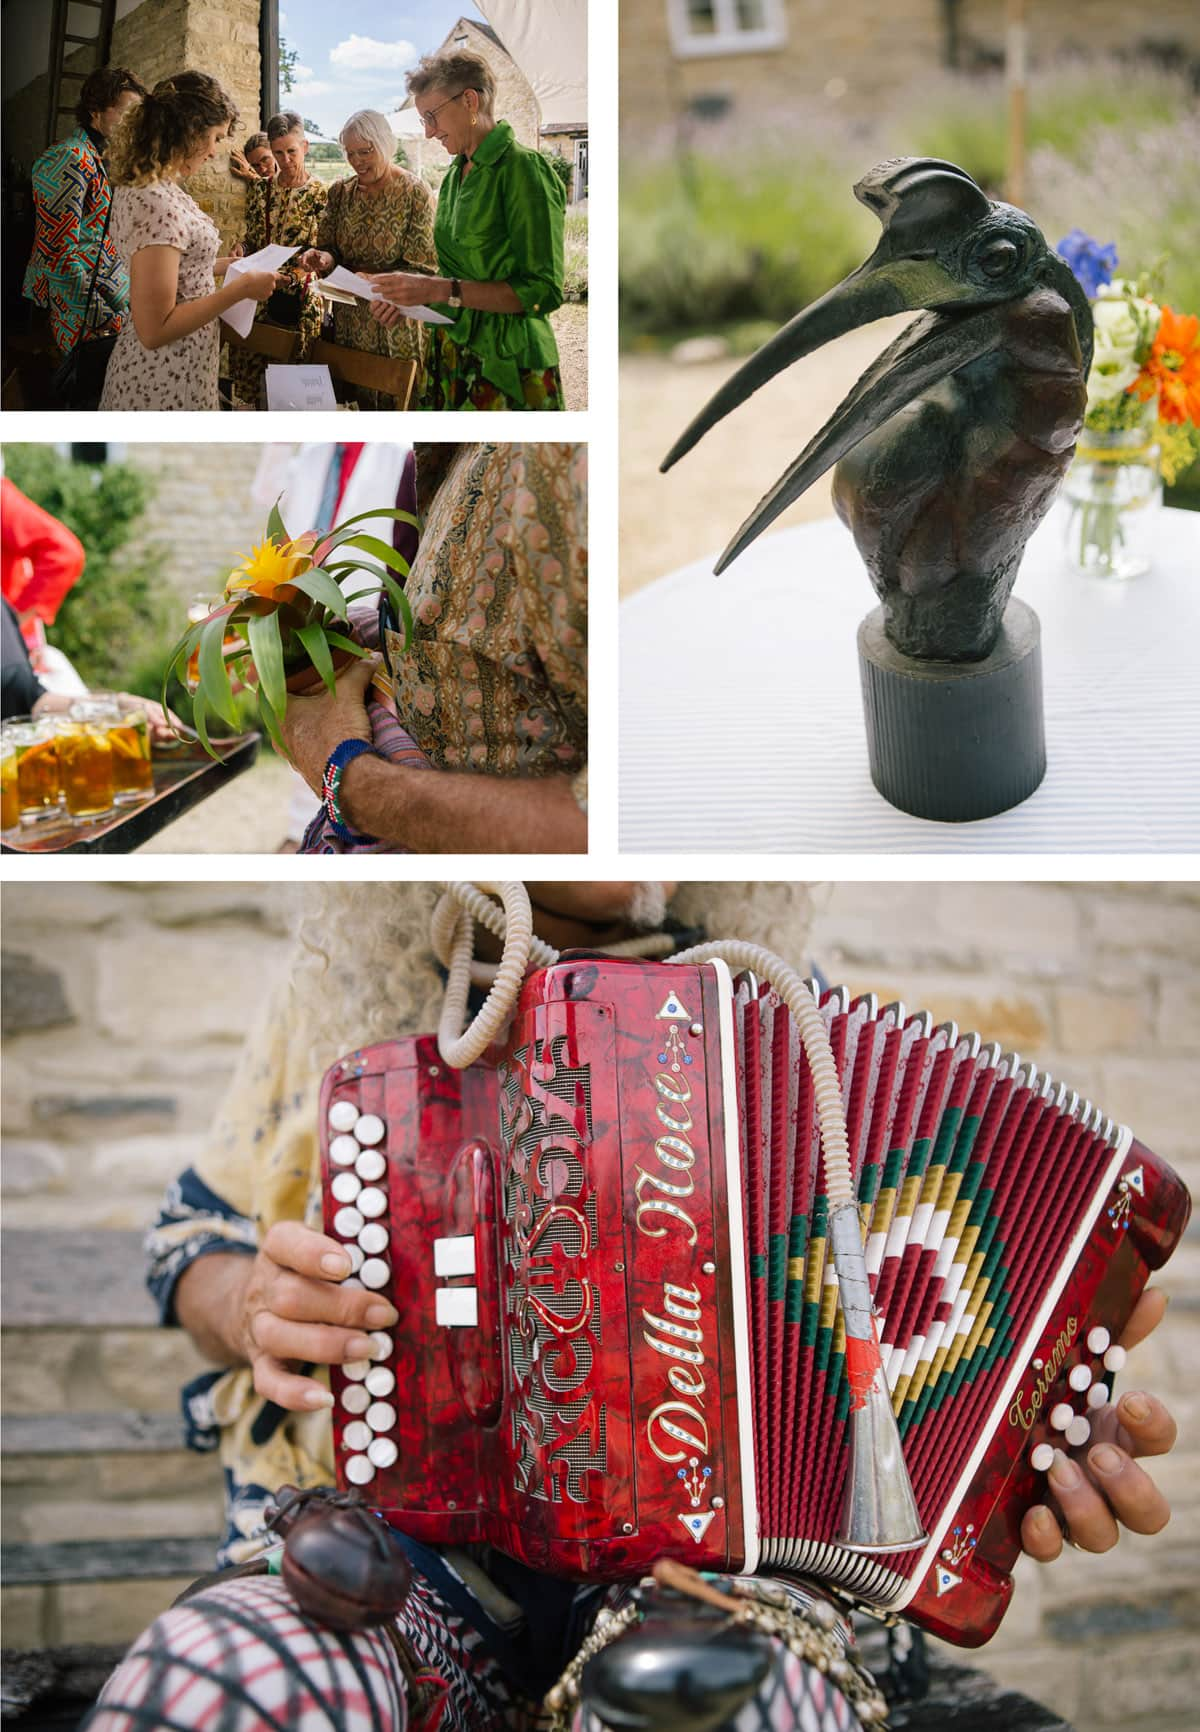 Collage of detail shots from safari-themed wedding. From top left: Guests greet bride, metal bird sculpture centrepiece made by the groom; bright red accordion played by Italian street musician; close up of bridal posy with tropical flowers and ferns